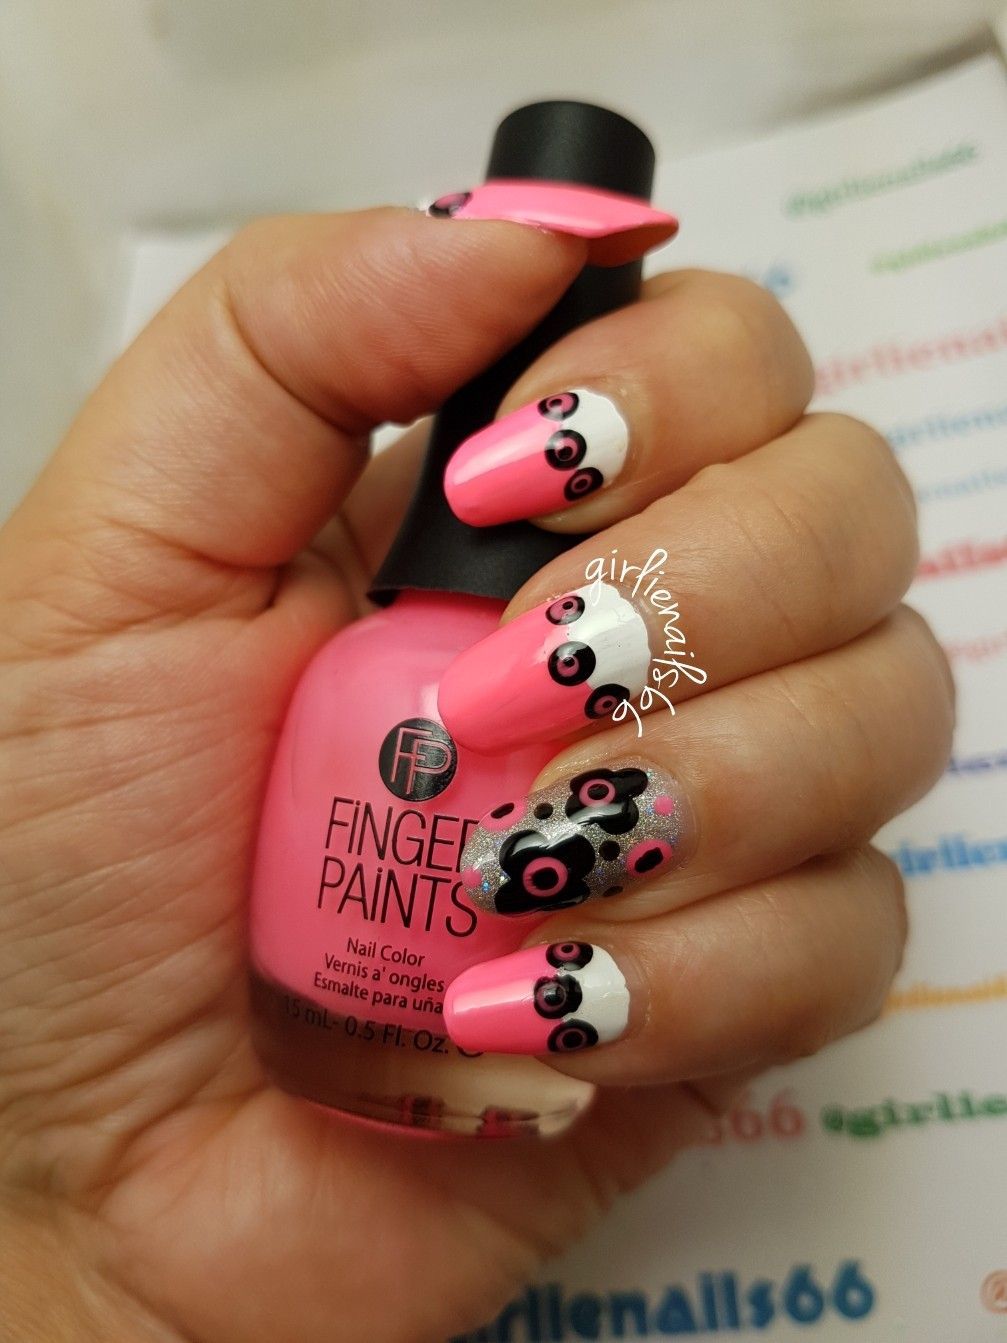 Pink White Flower Nails Nail Designs By Girlienails66